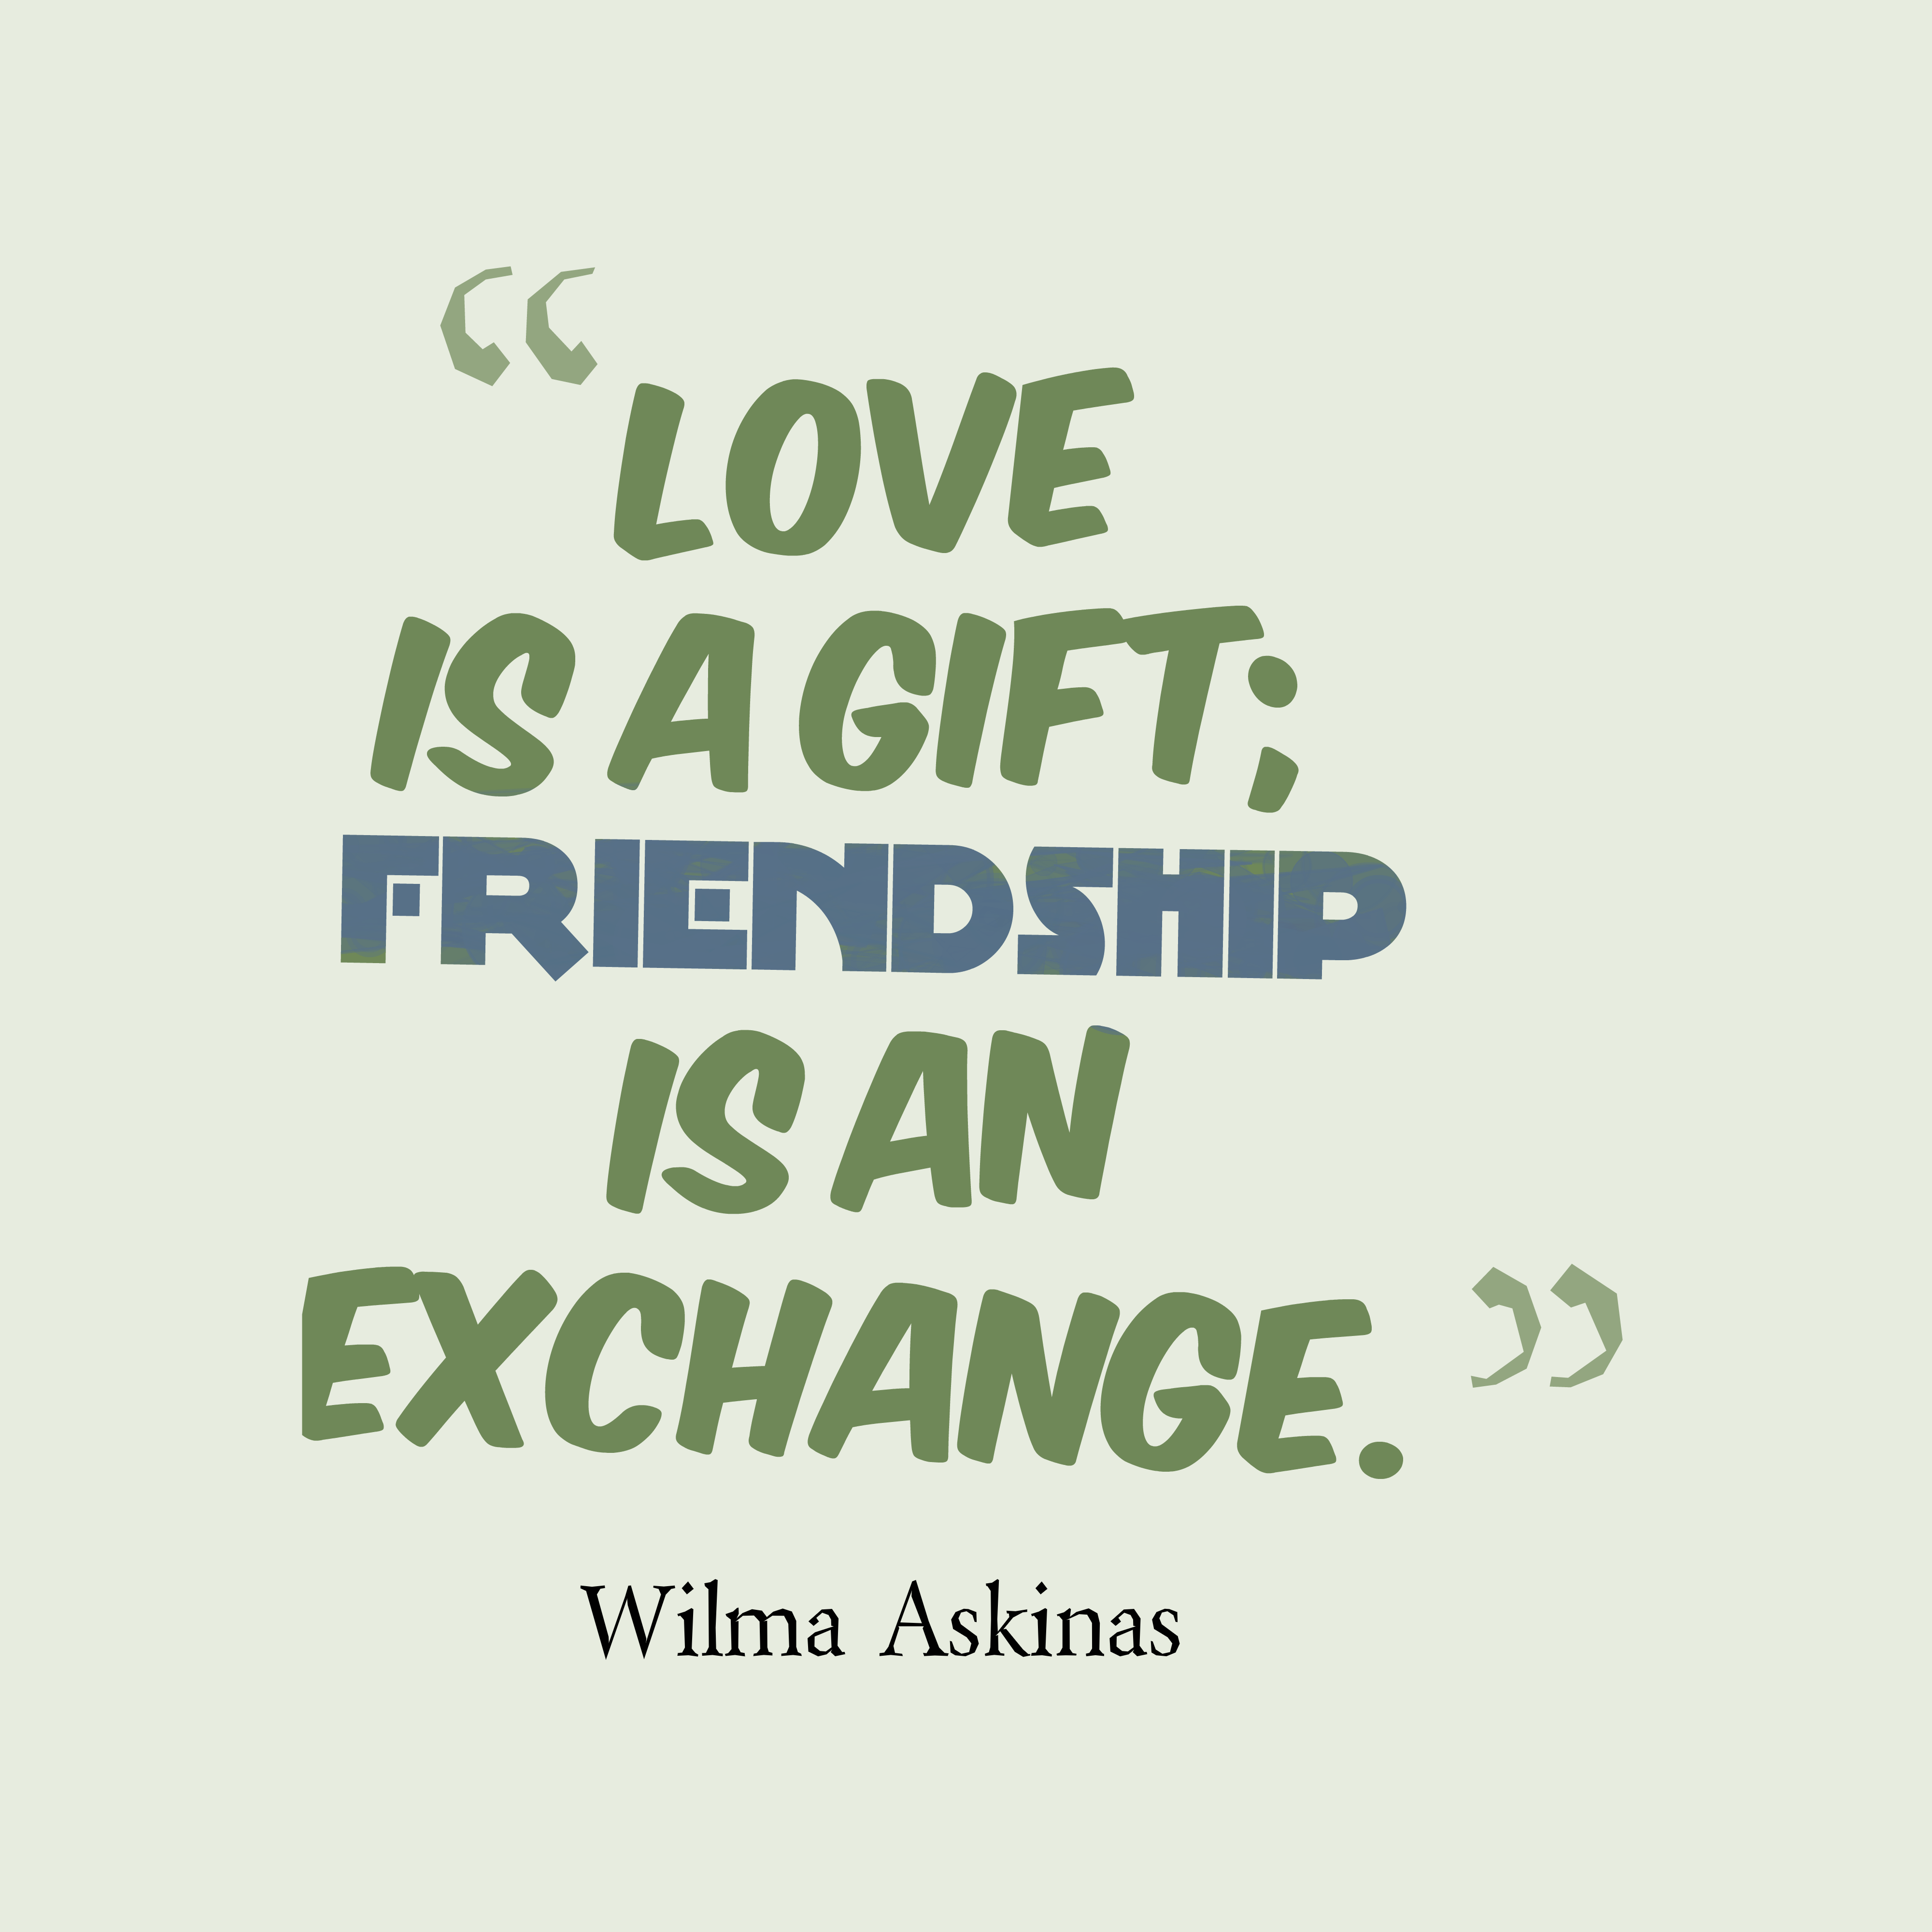 Wilma askinas quote about love